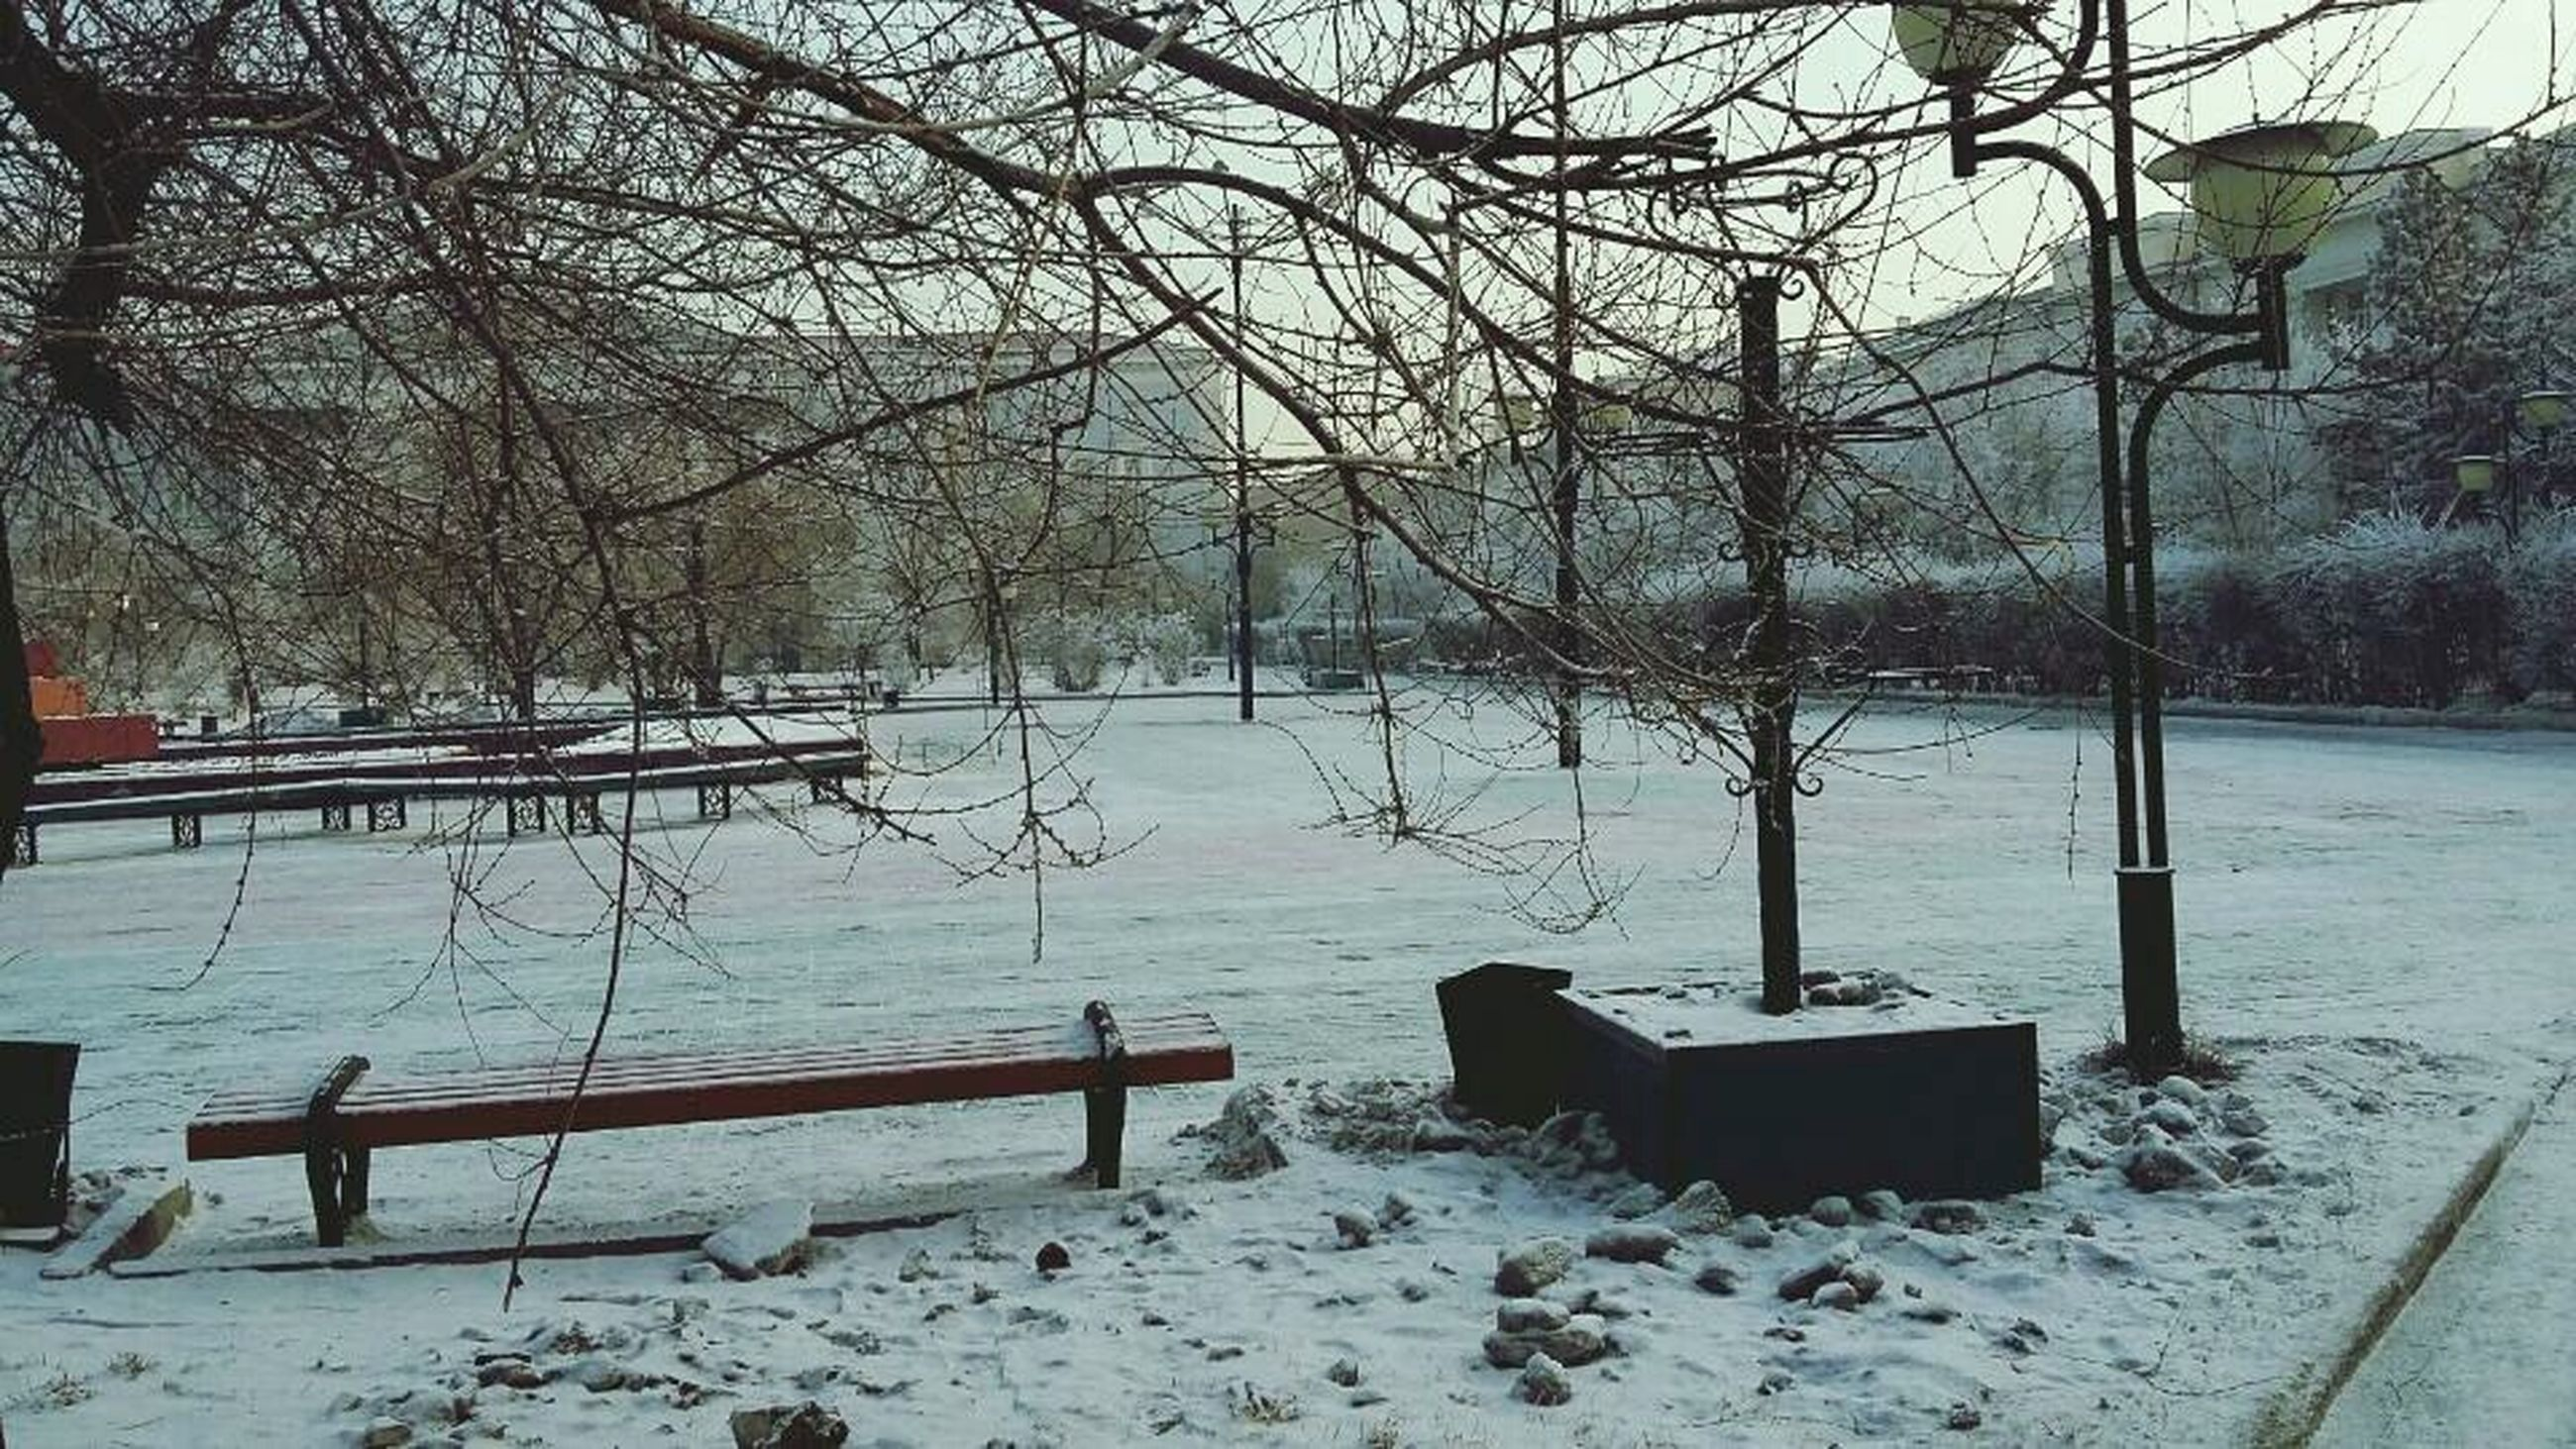 snow, tree, winter, bare tree, cold temperature, branch, water, season, tranquility, nature, tranquil scene, weather, tree trunk, day, lake, beauty in nature, frozen, no people, scenics, outdoors